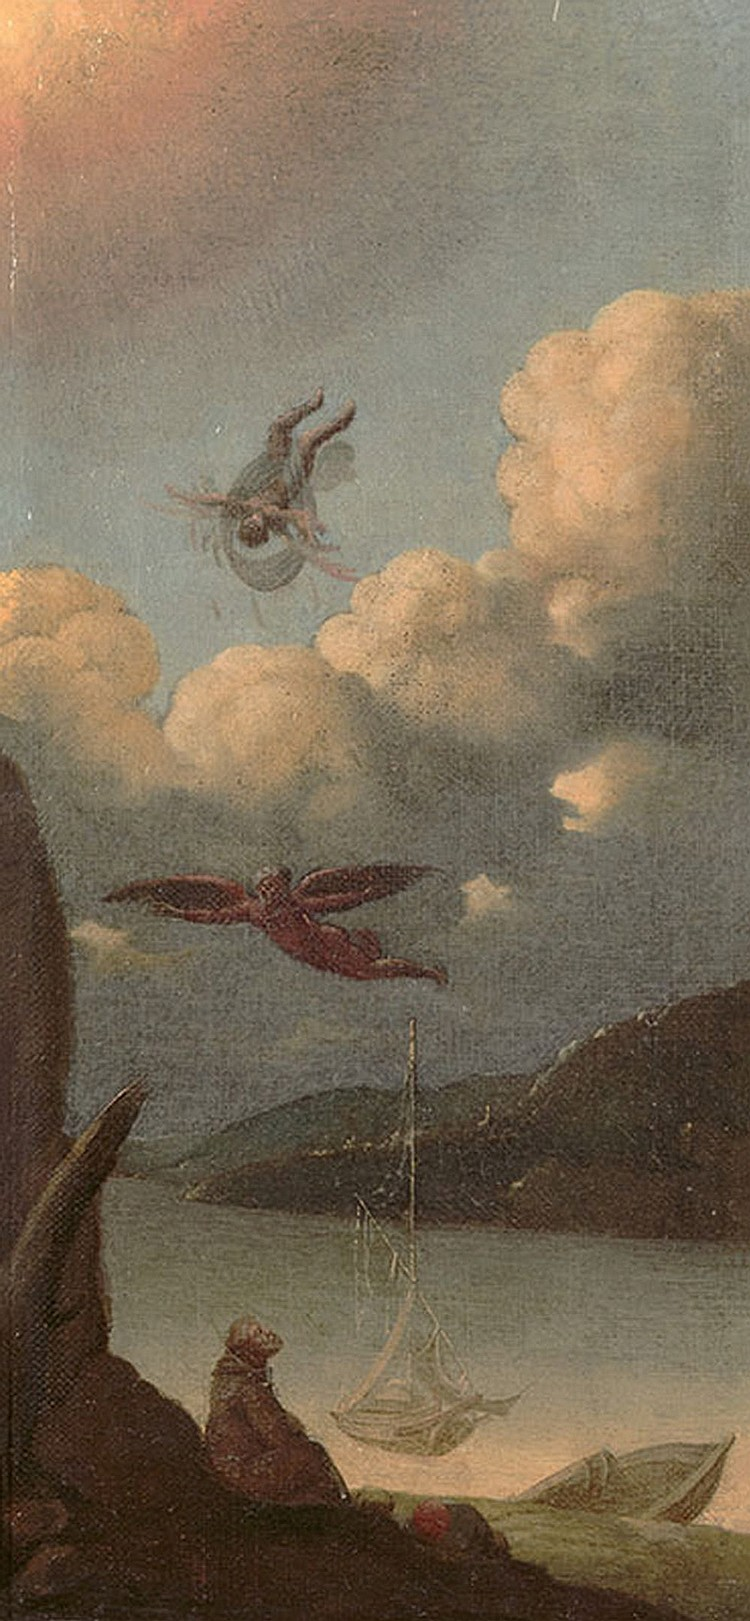 Italian school of the end of the XVIII century, Fall of Icarus